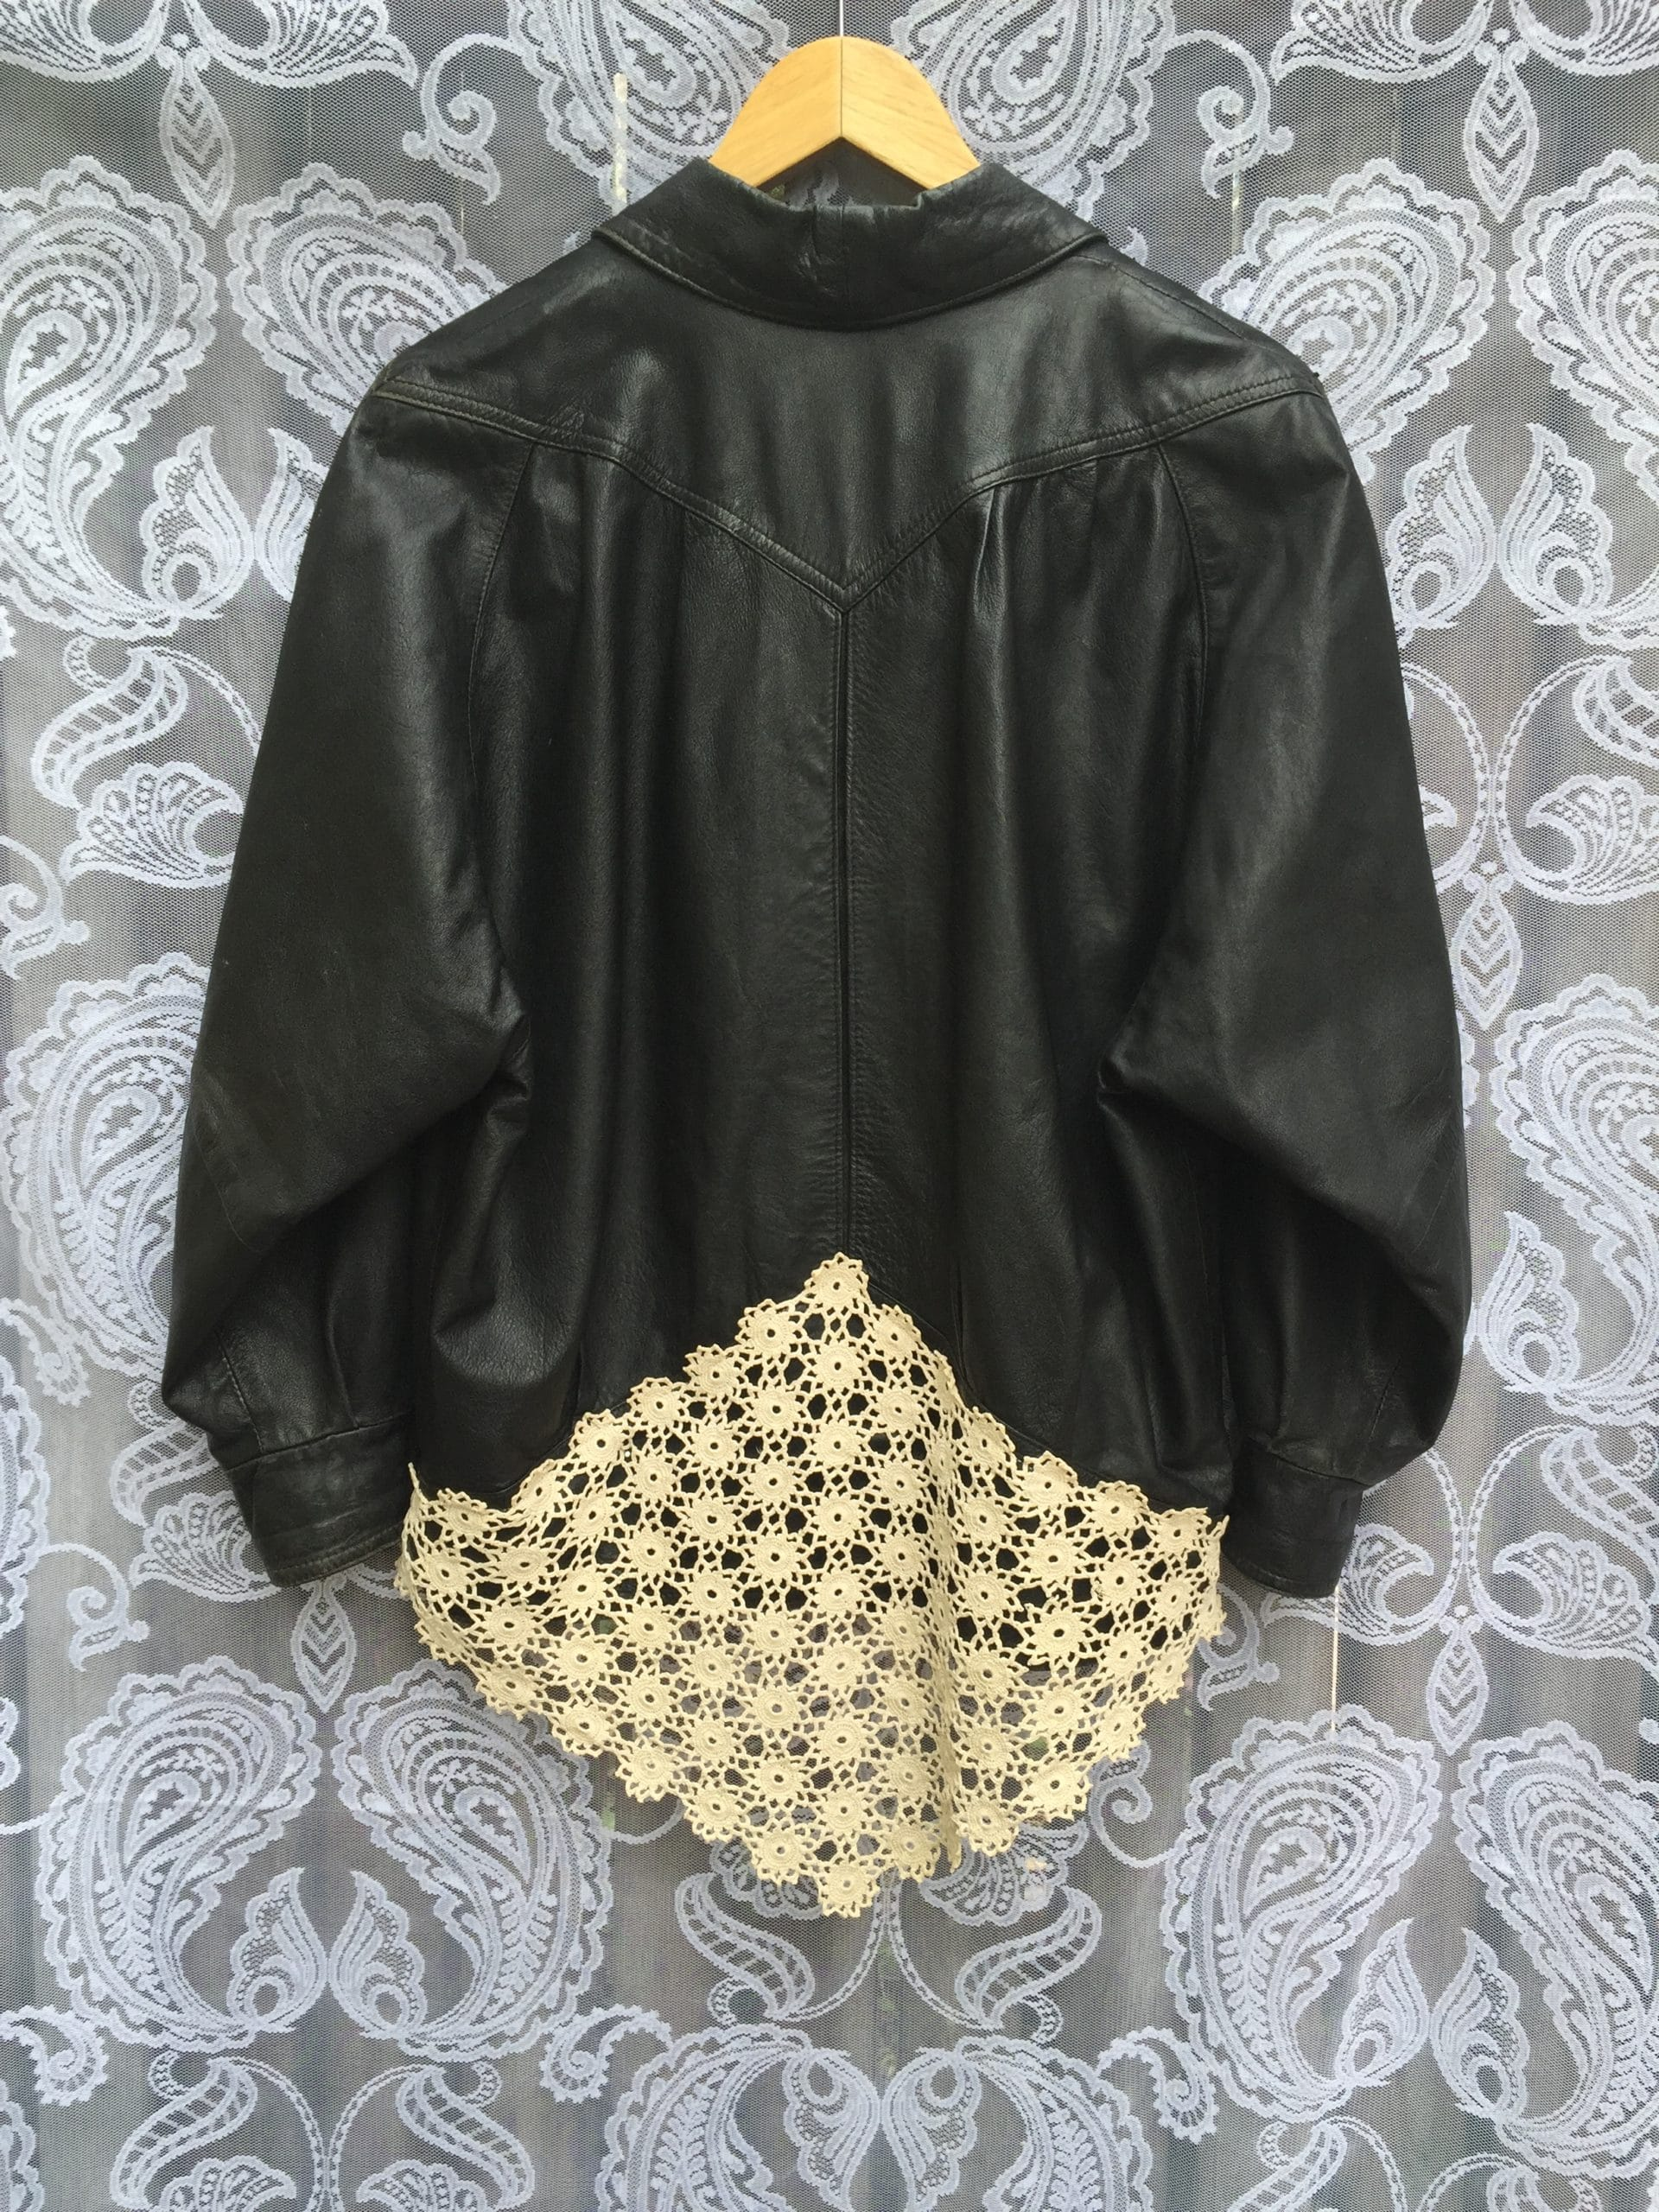 Vintage Leather + Doily Jacket